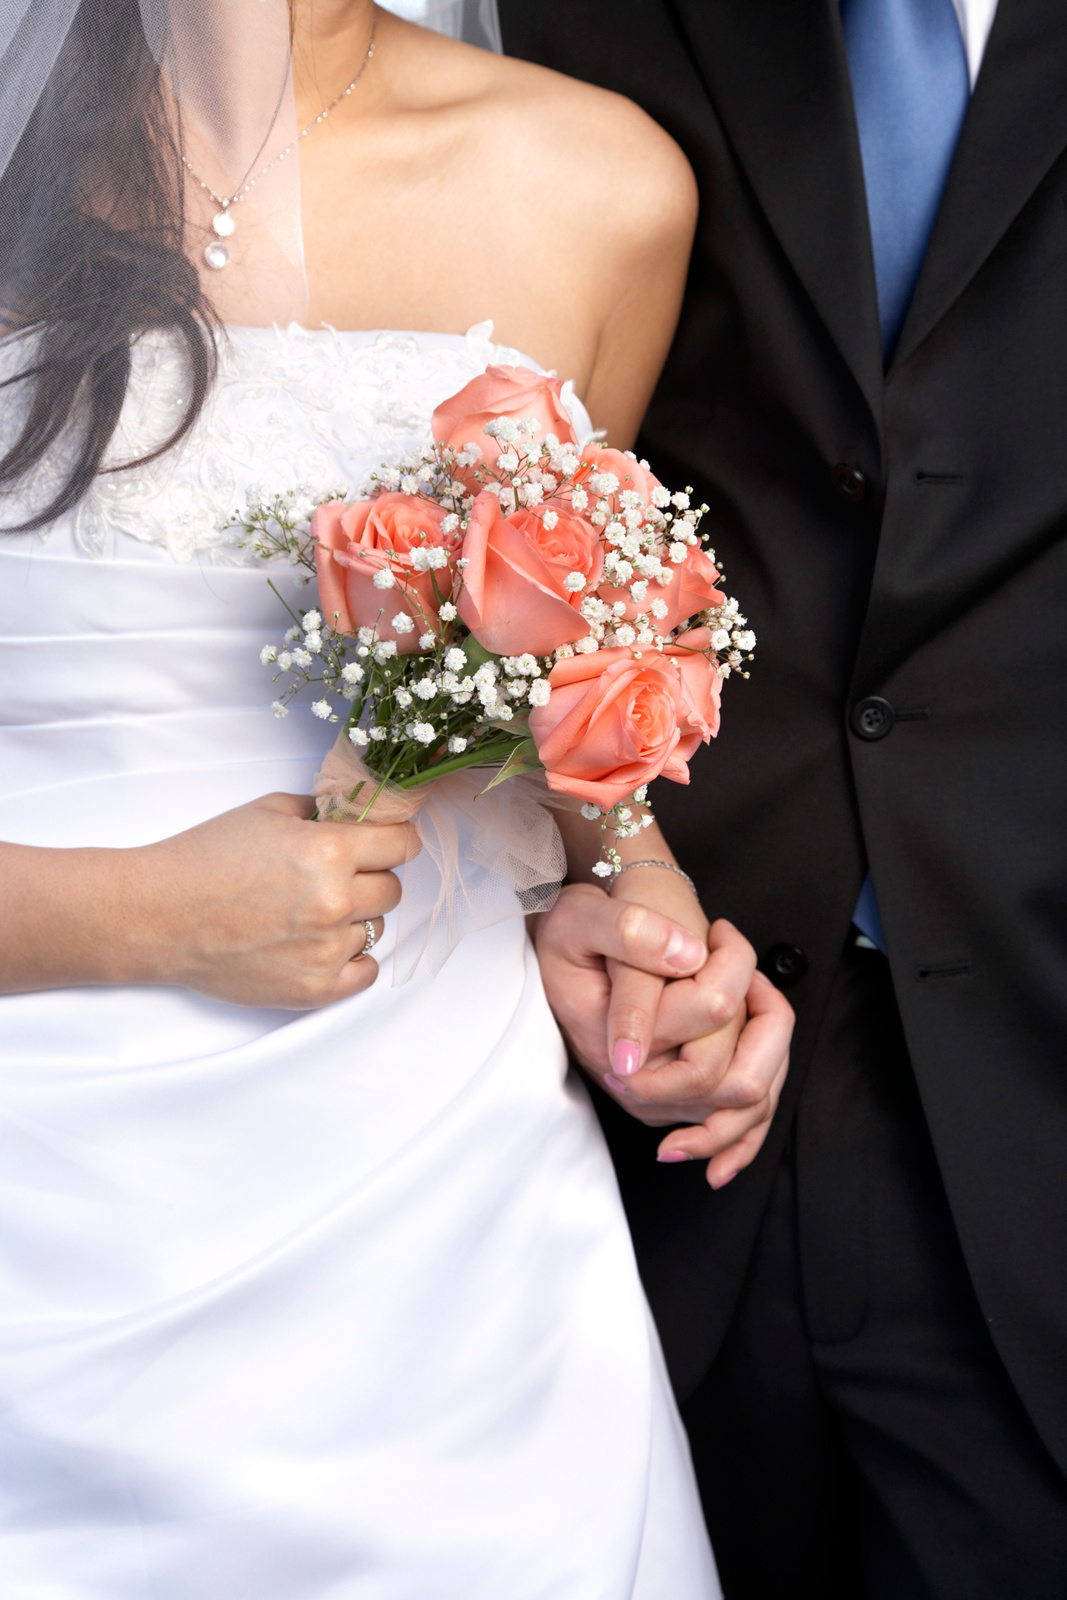 close-up of wedding bouquet held by bride